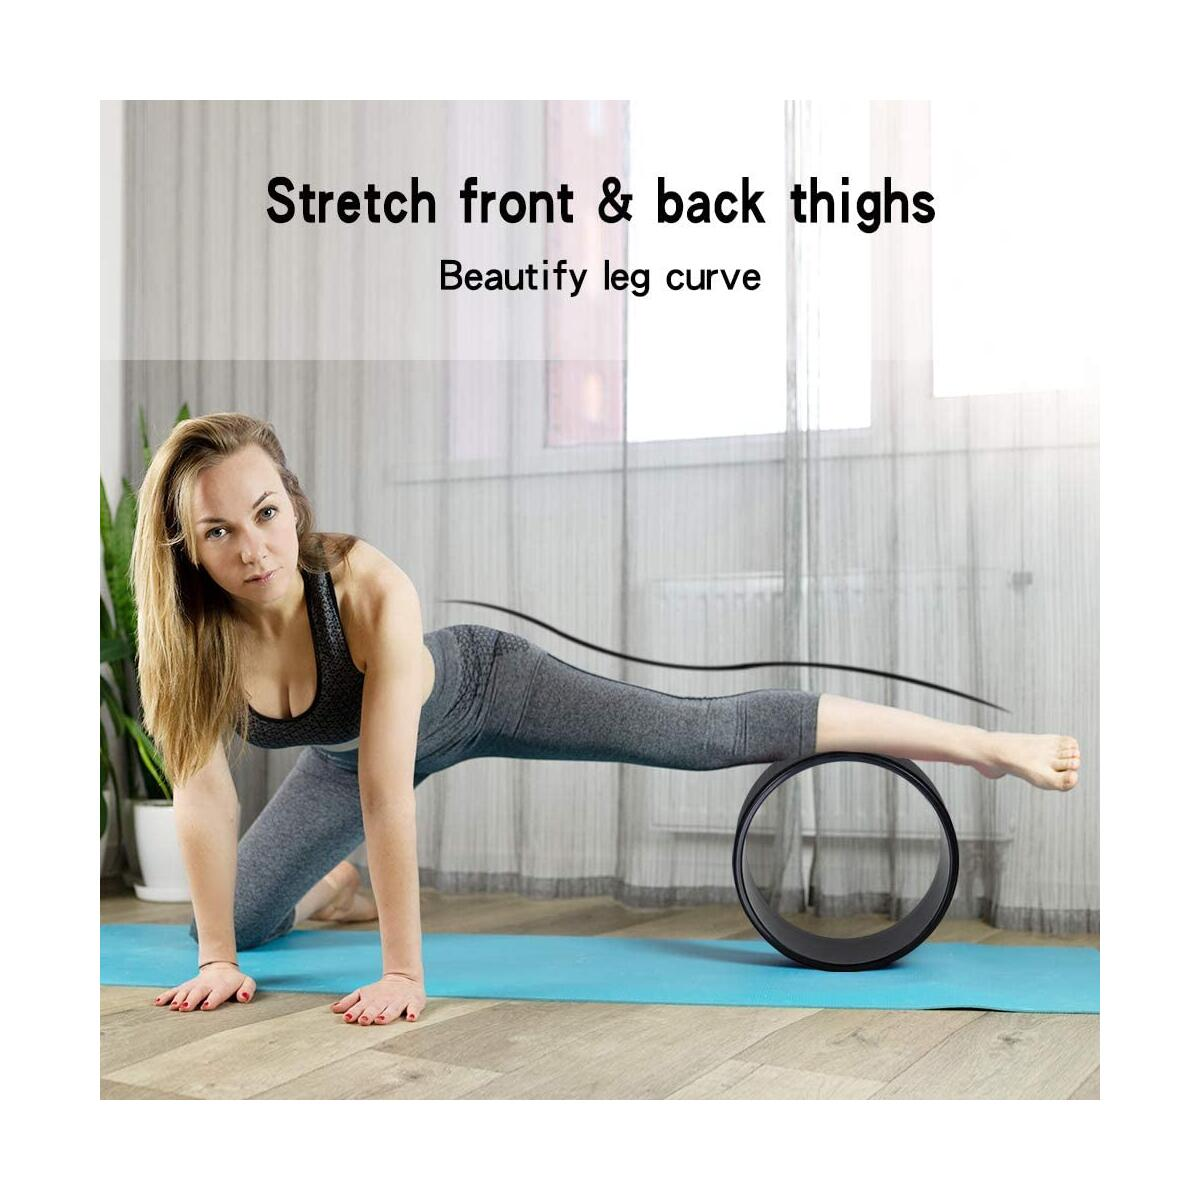 EnterSports Yoga Wheel Set Sports Yoga Roller for Women Back Pain, Stretching, Backbends and Improving Flexibility Training with Yoga Stretch Strap